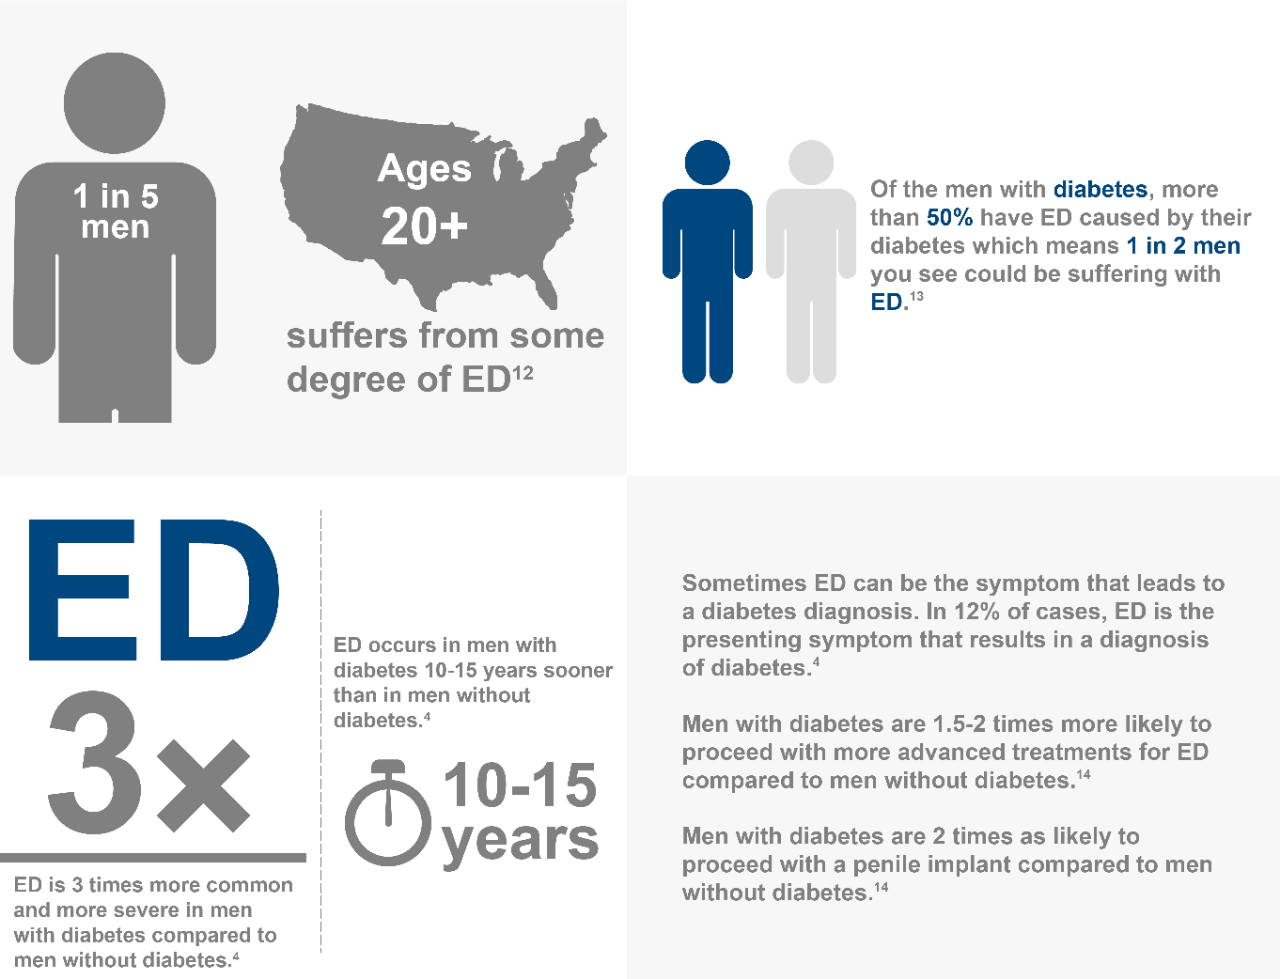 1 in 5 men ages 20+ suffer from some degree of ED > Of the men with diabetes, more than 50% have ED caused by their diabetes which means 1 in 2 men you see could be suffering with ED.